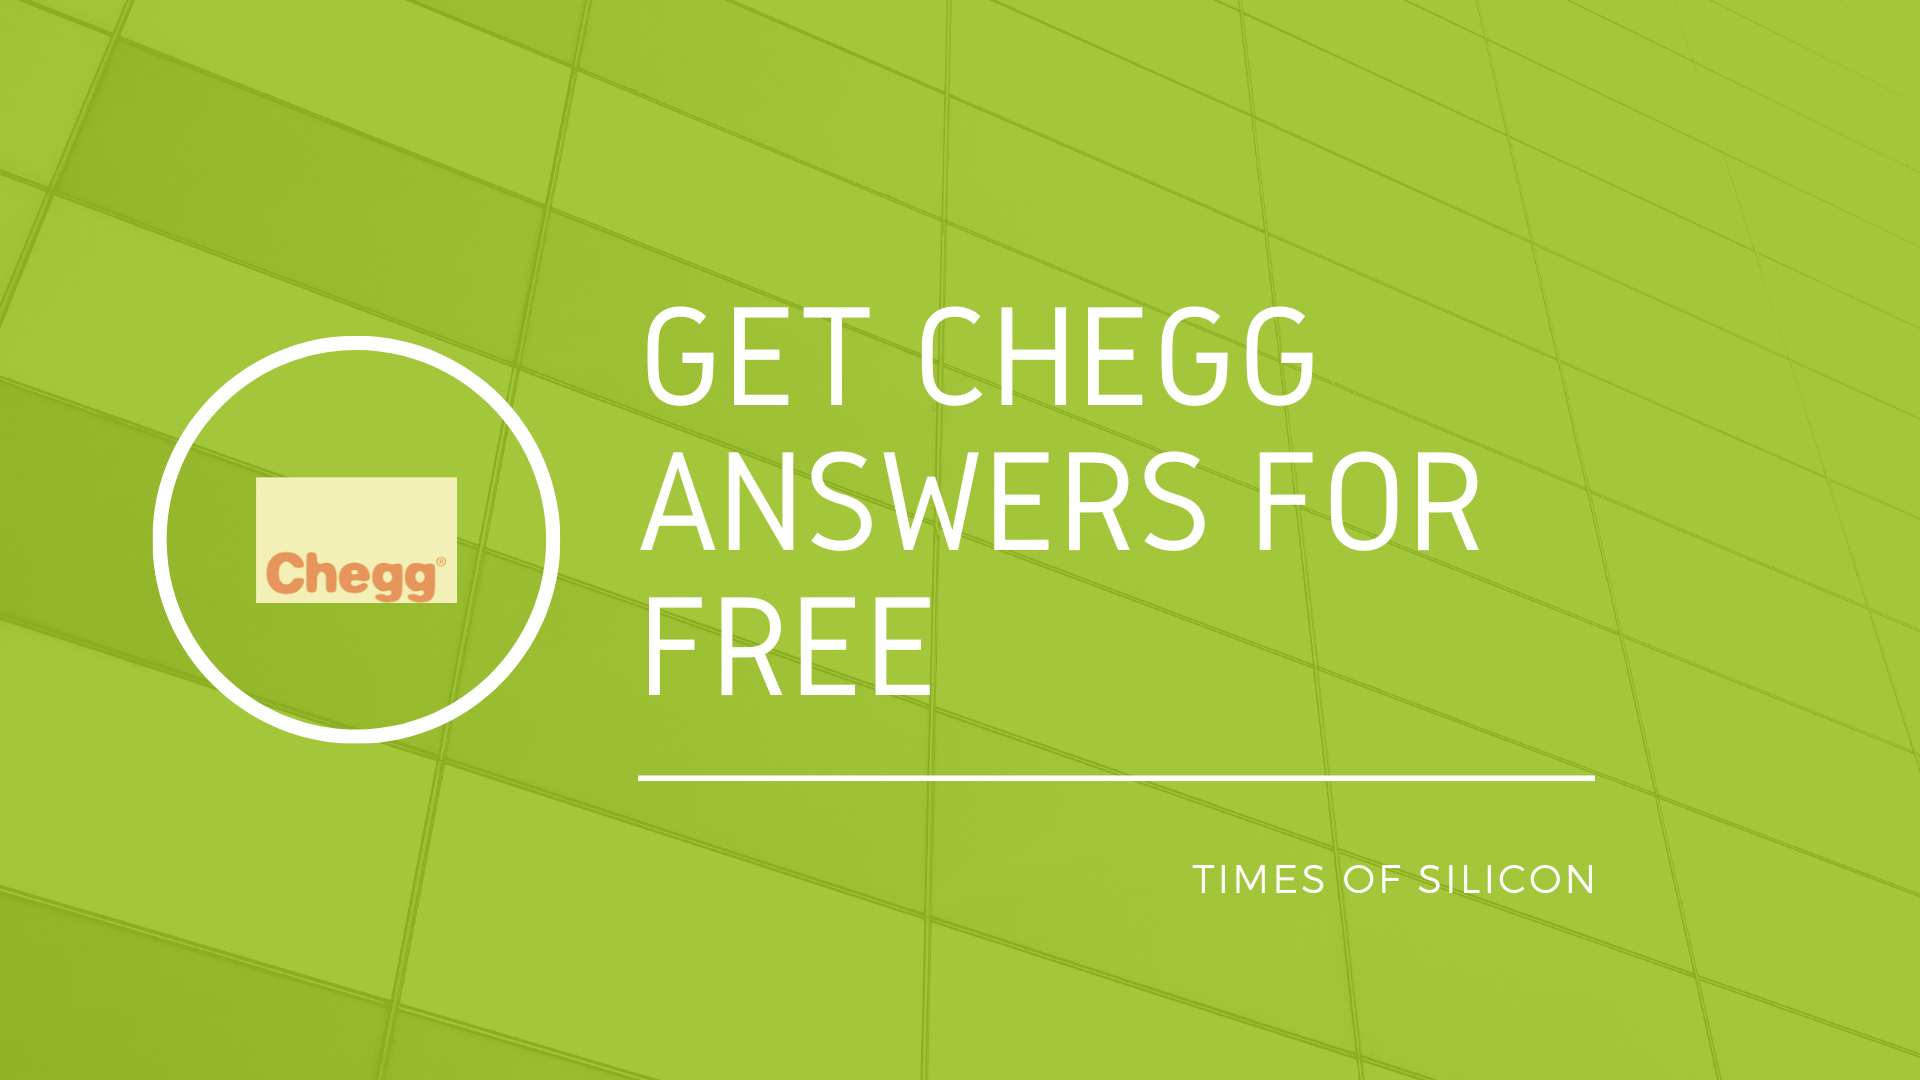 Get Chegg Answers Free